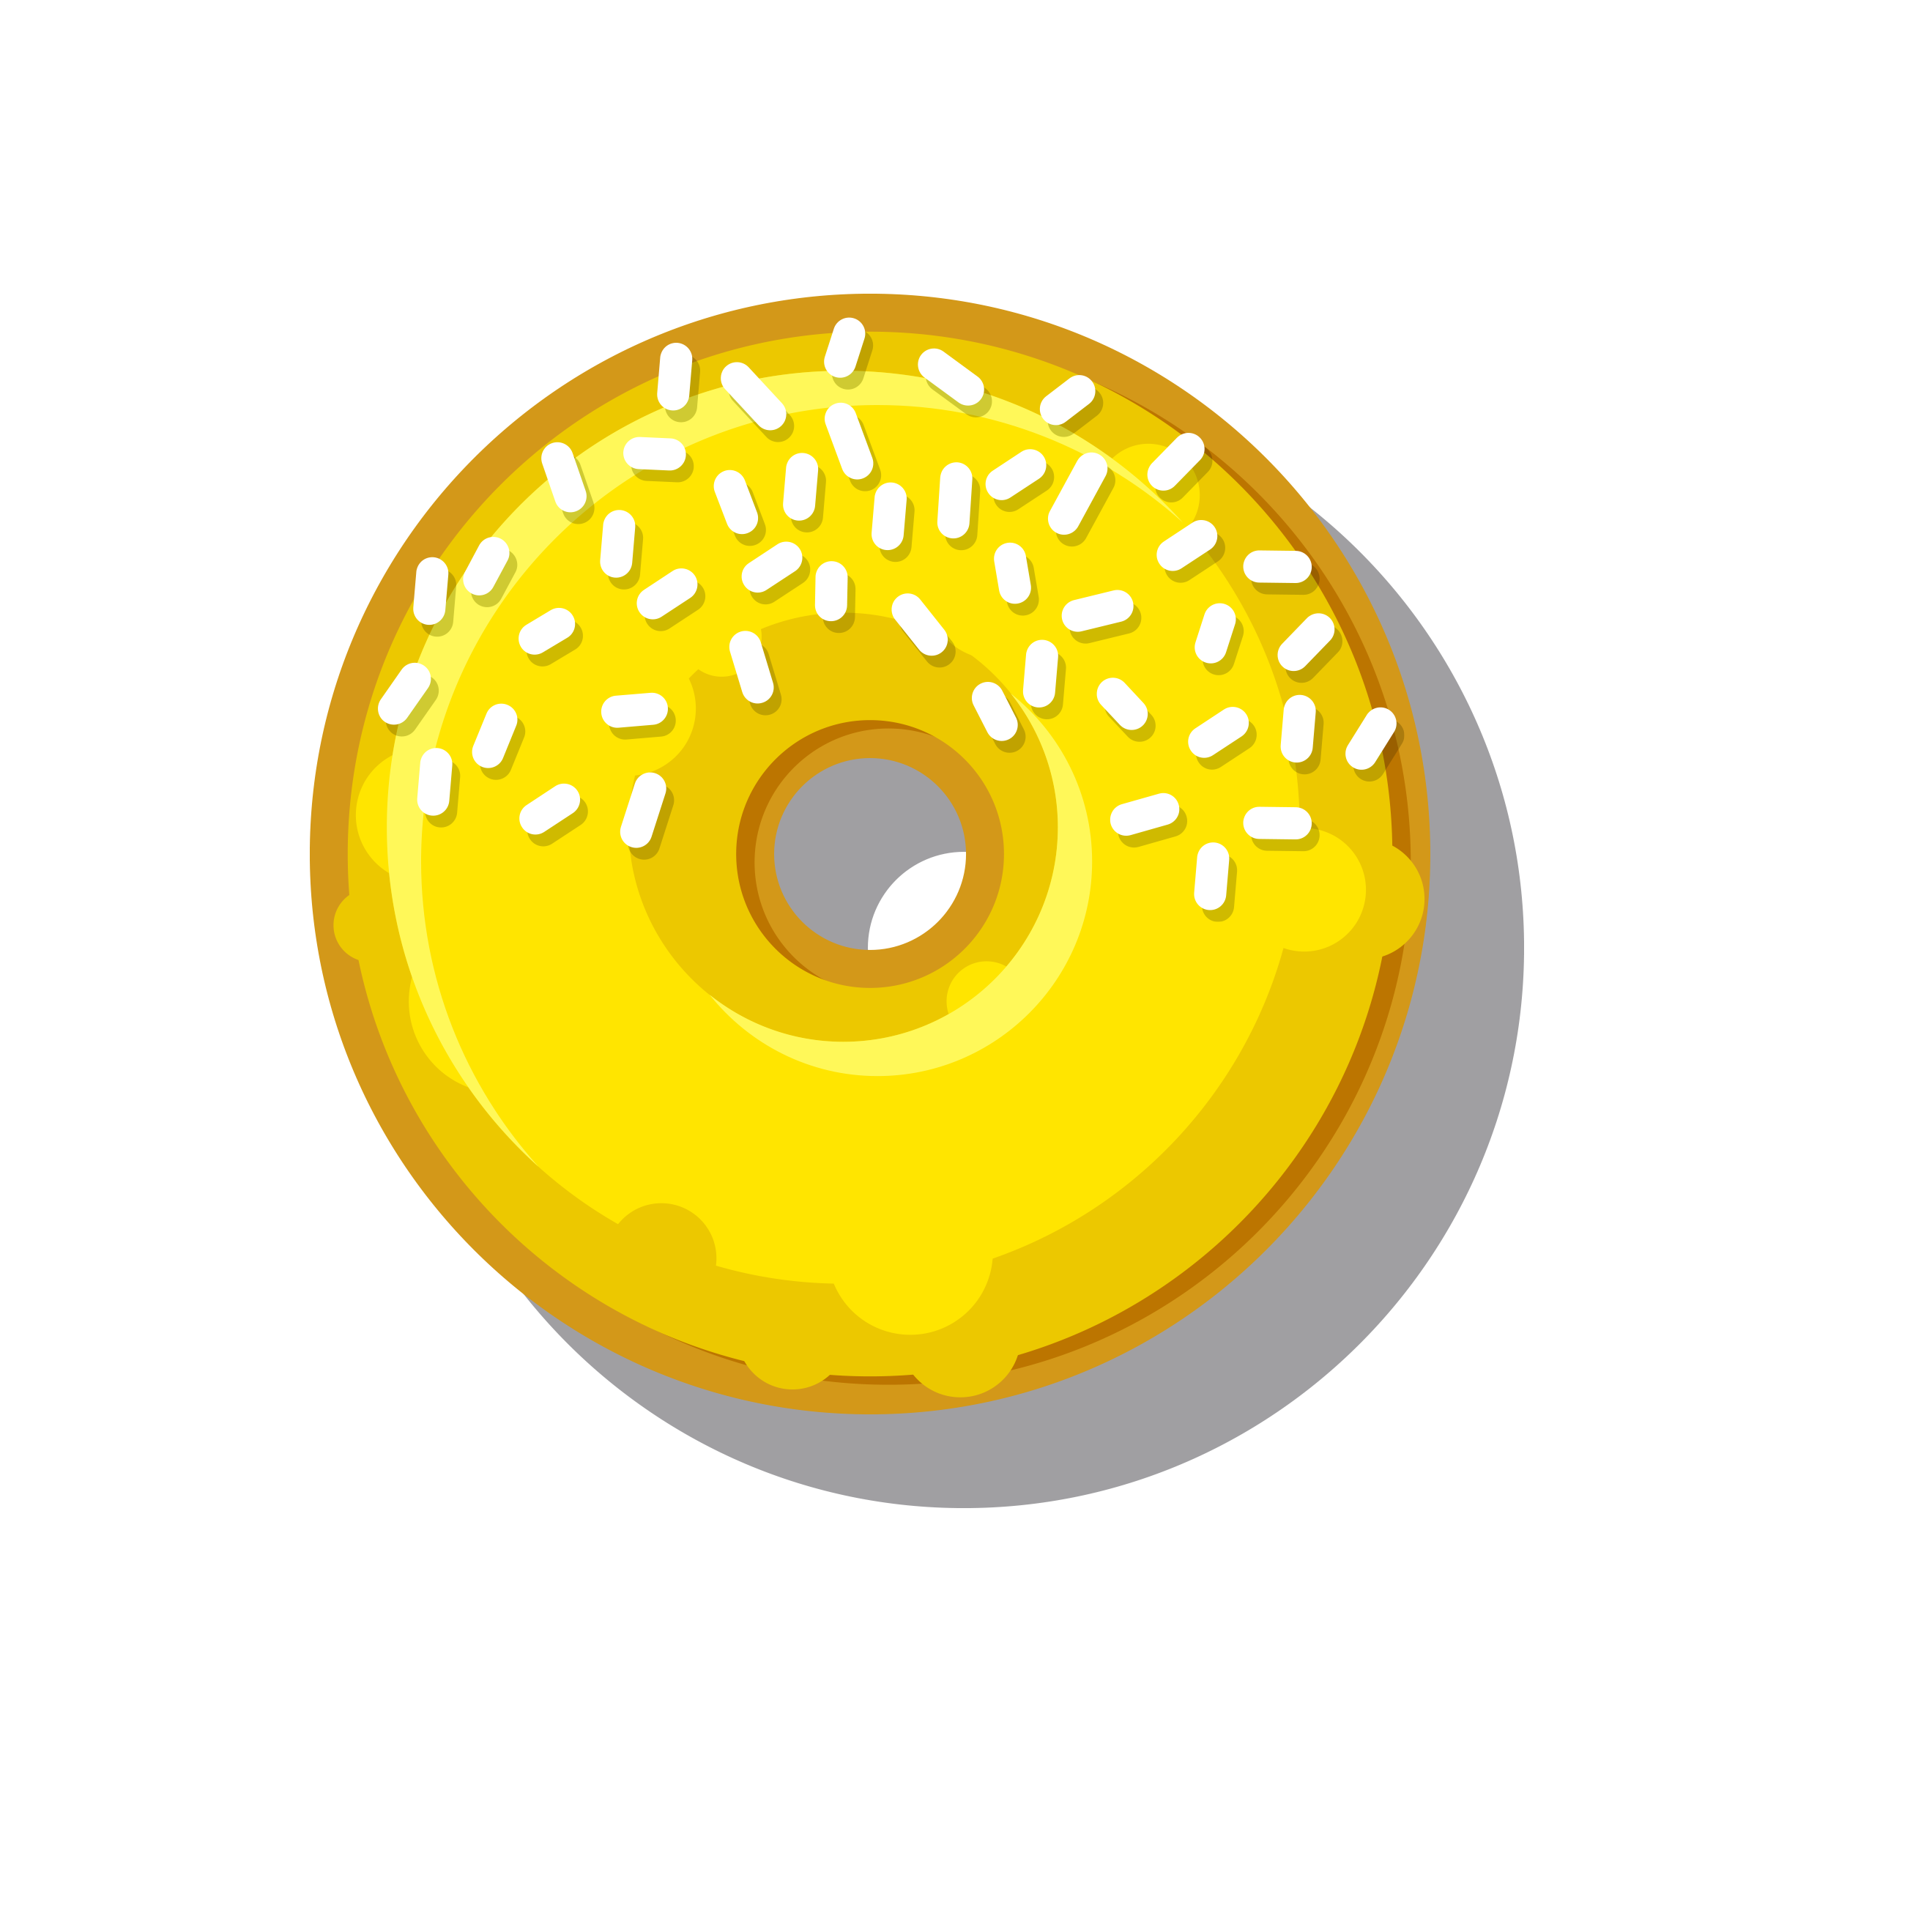 Yellow donut photo